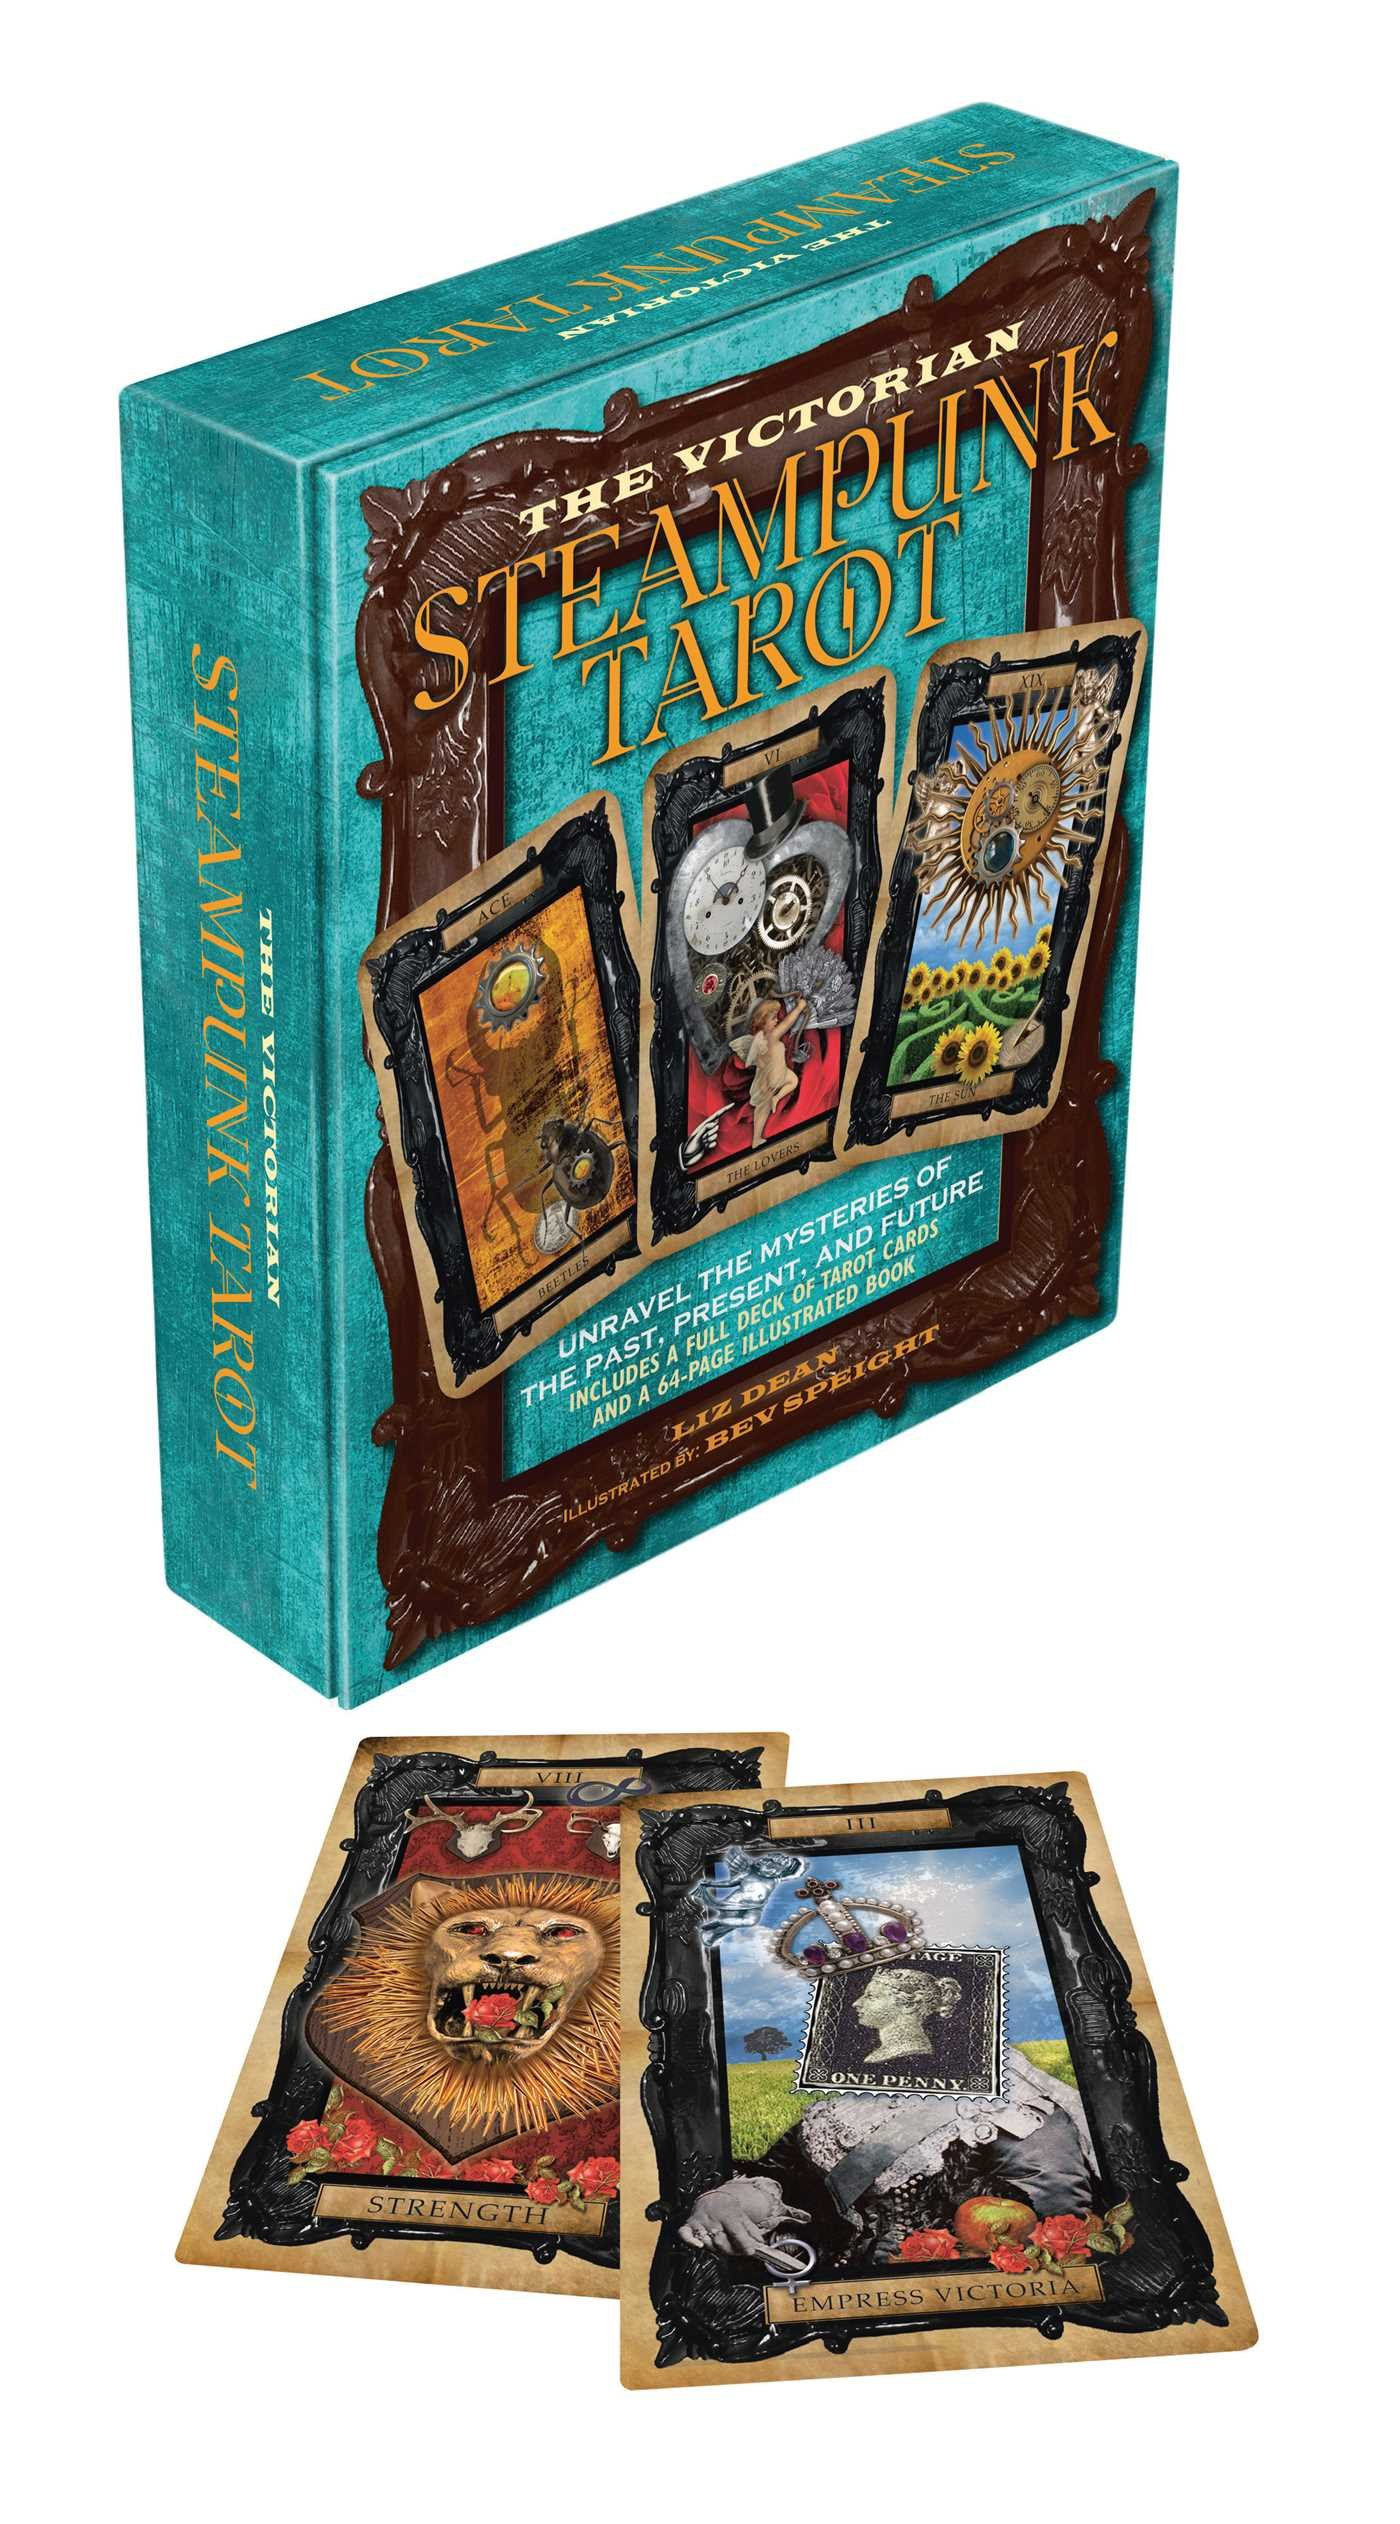 Victorian Steampunk Tarot: Unravel the Mysteries of the Past, Present, and Future With 78 Tarot Cards: Amazon.es: Dean, Liz: Libros en idiomas extranjeros